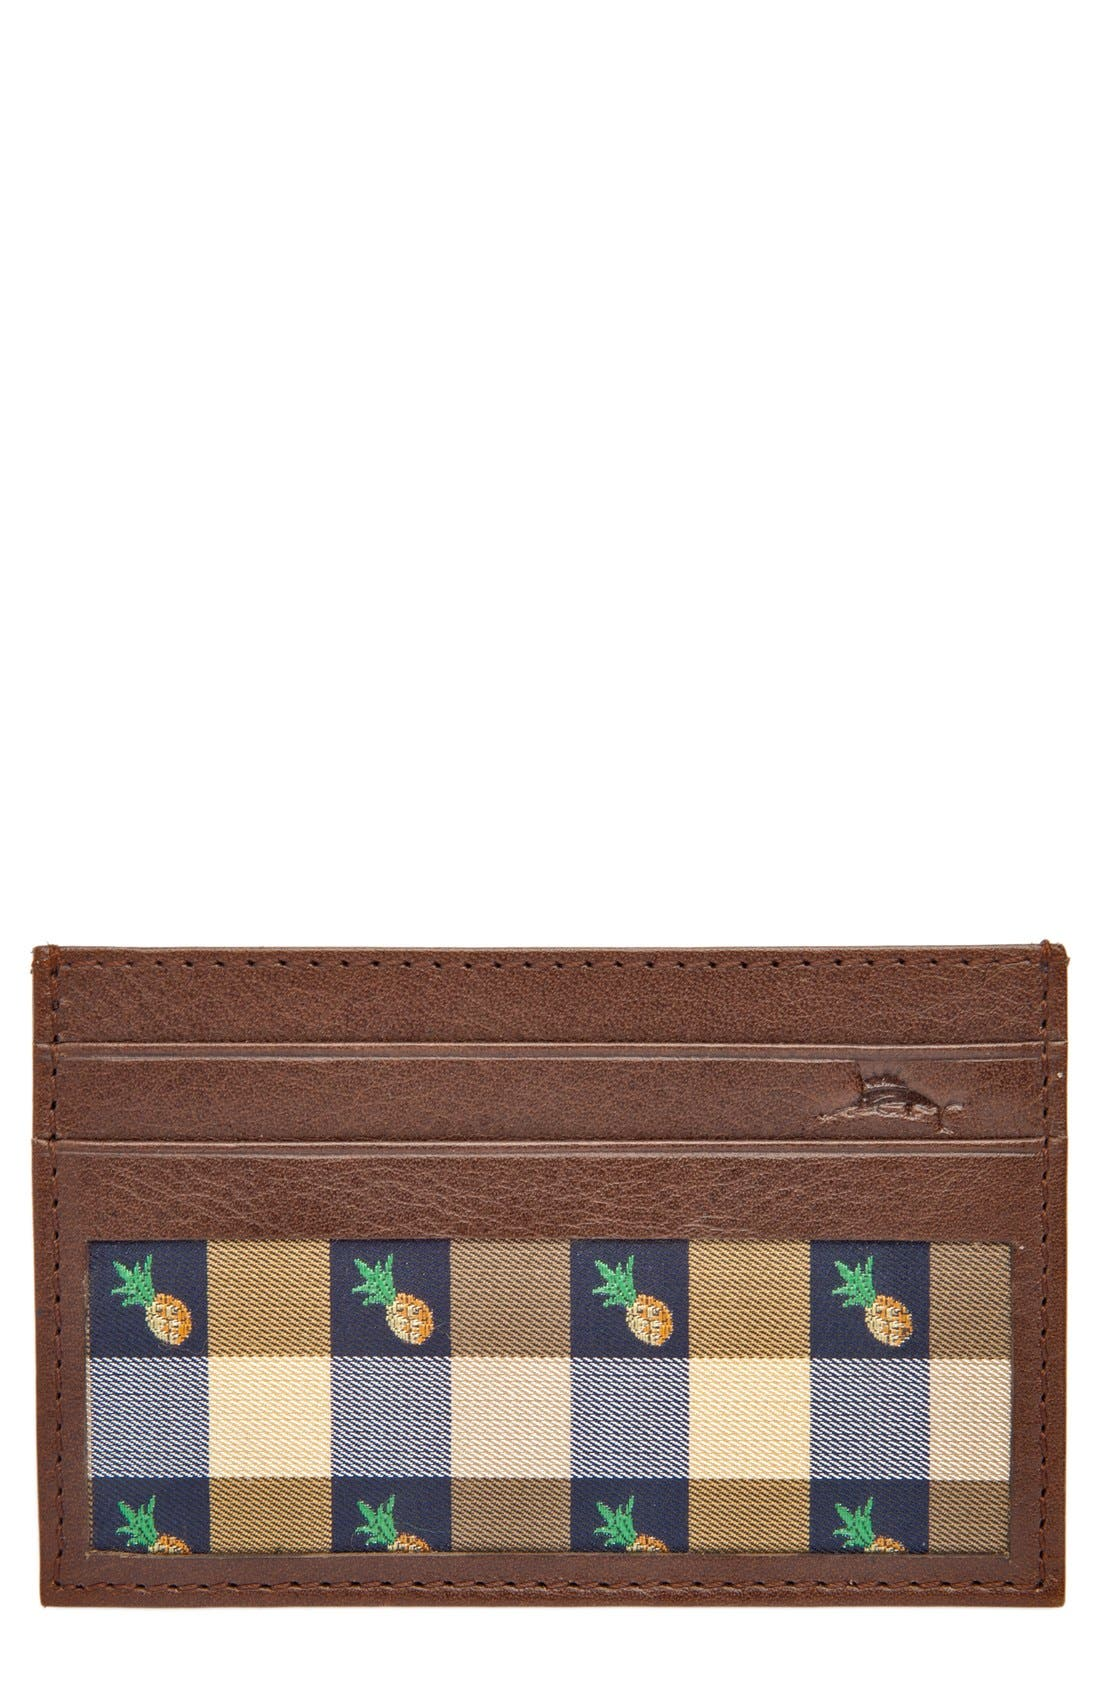 Tommy Bahama 'Pineapple' Card Case